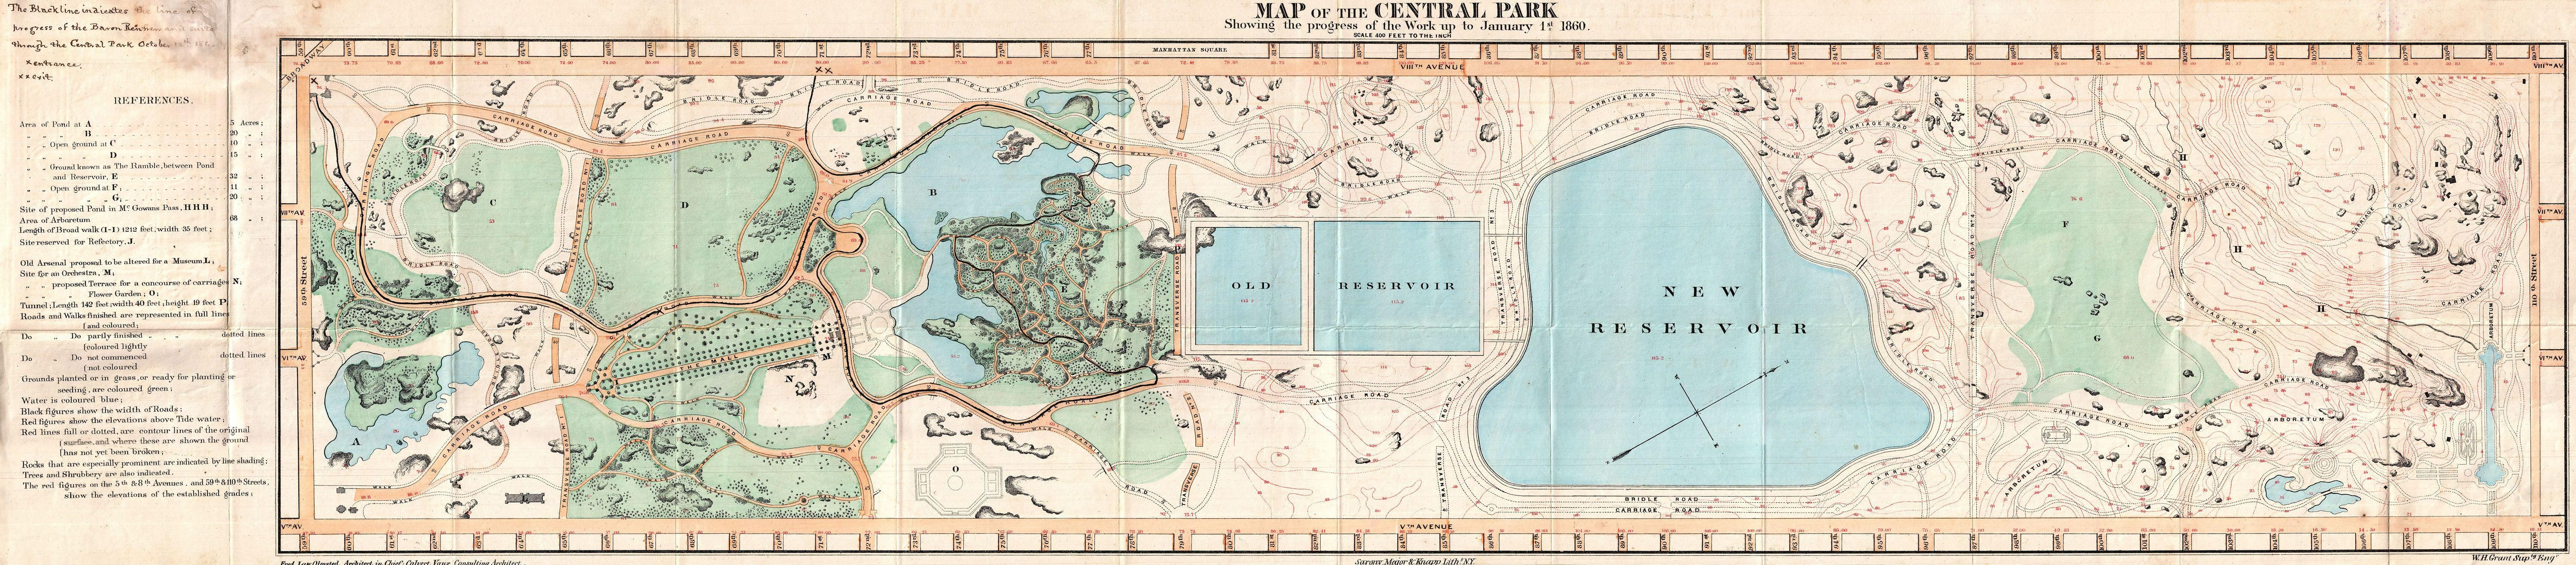 1860 Pocket Map of Central Park New York City Geographicus